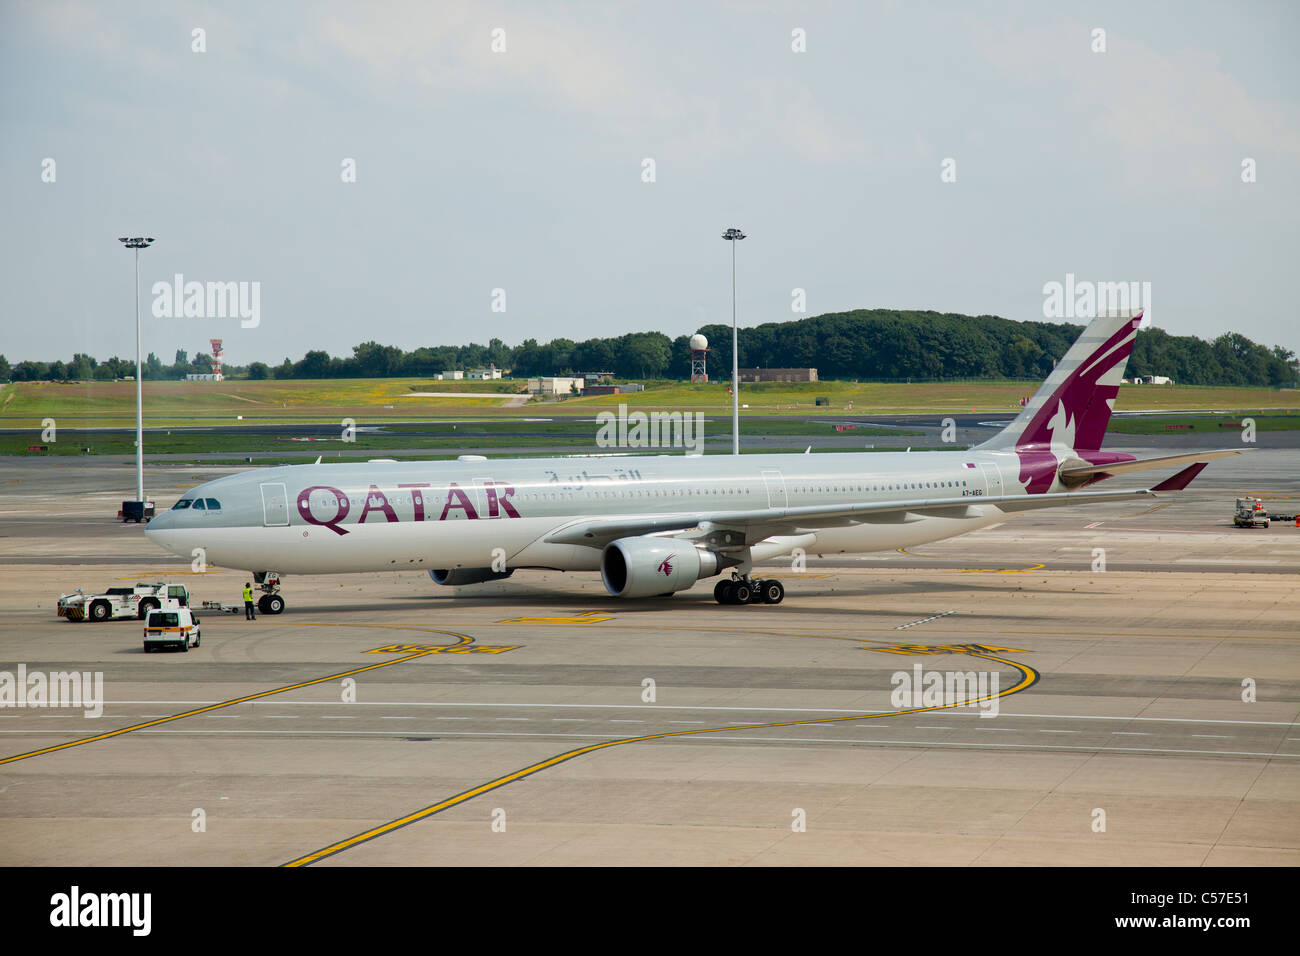 Airbus A330-302, reg A7-AEG, belonging to Qatar Airways, at Brussels International Airport - Stock Image